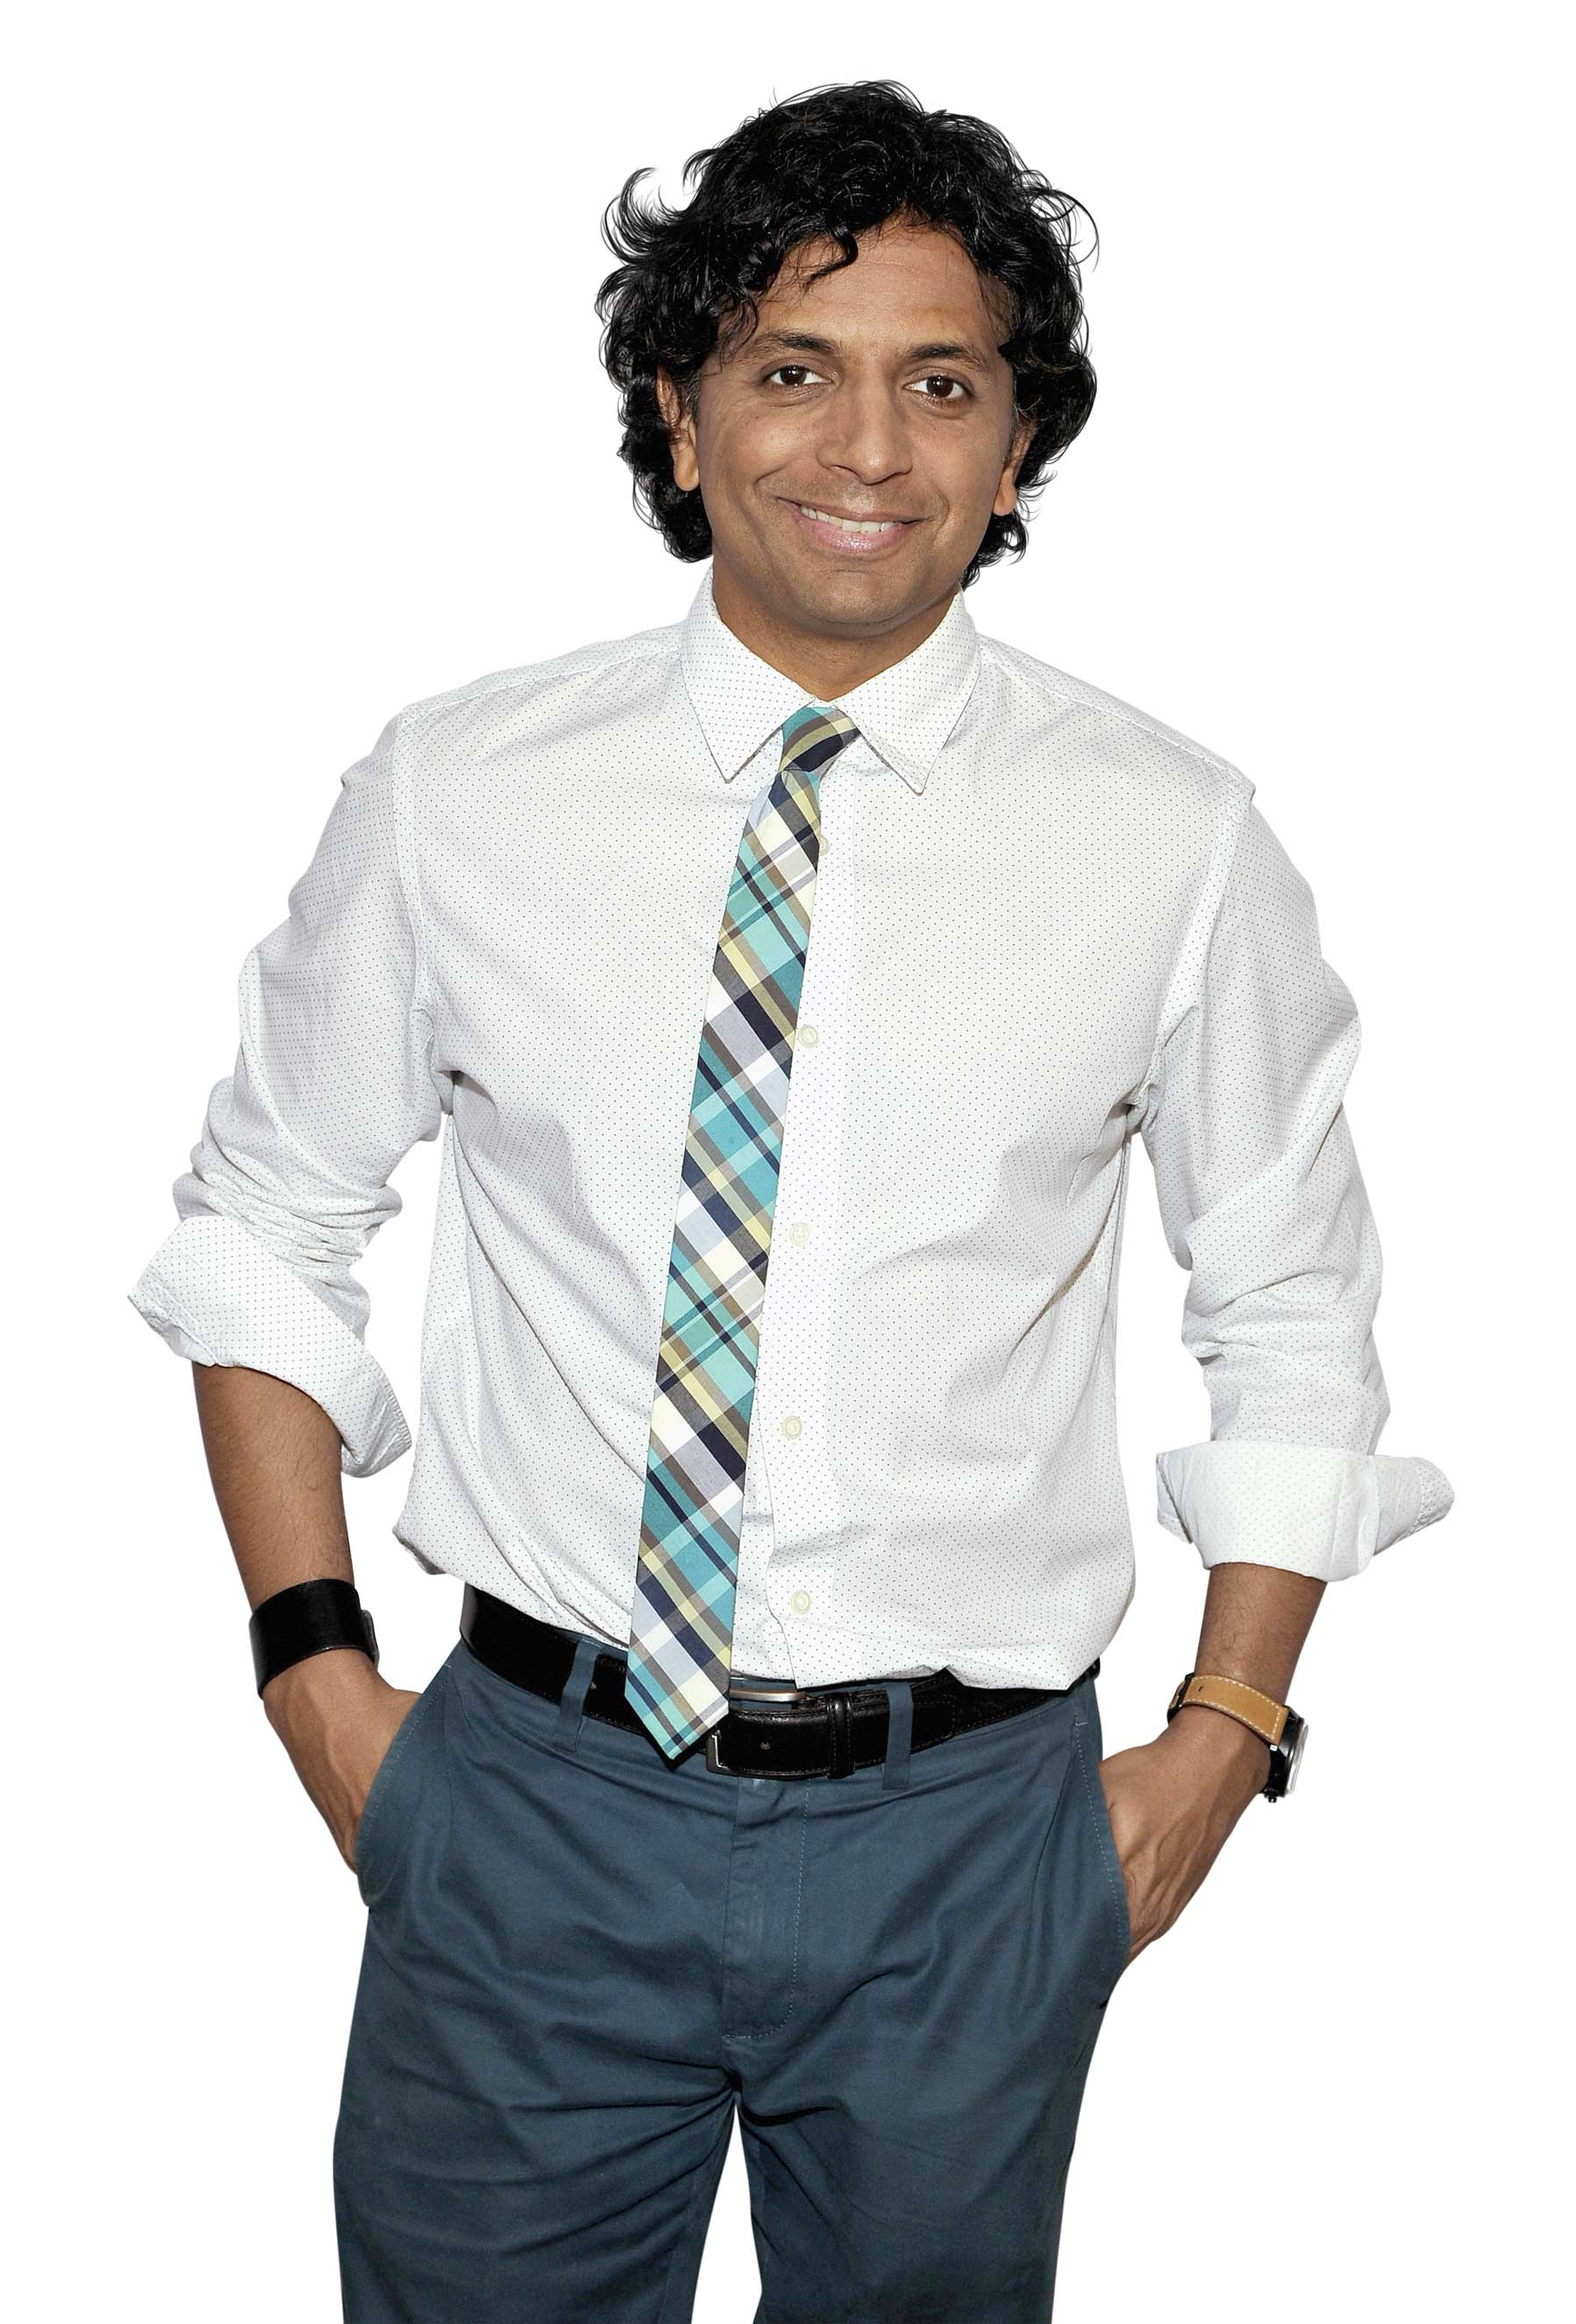 Director M. Night Shyamalan attends WIRED Cafe at Comic Con 2015 in San Diego at Omni Hotel on July 9, 2015 in San Diego, California.